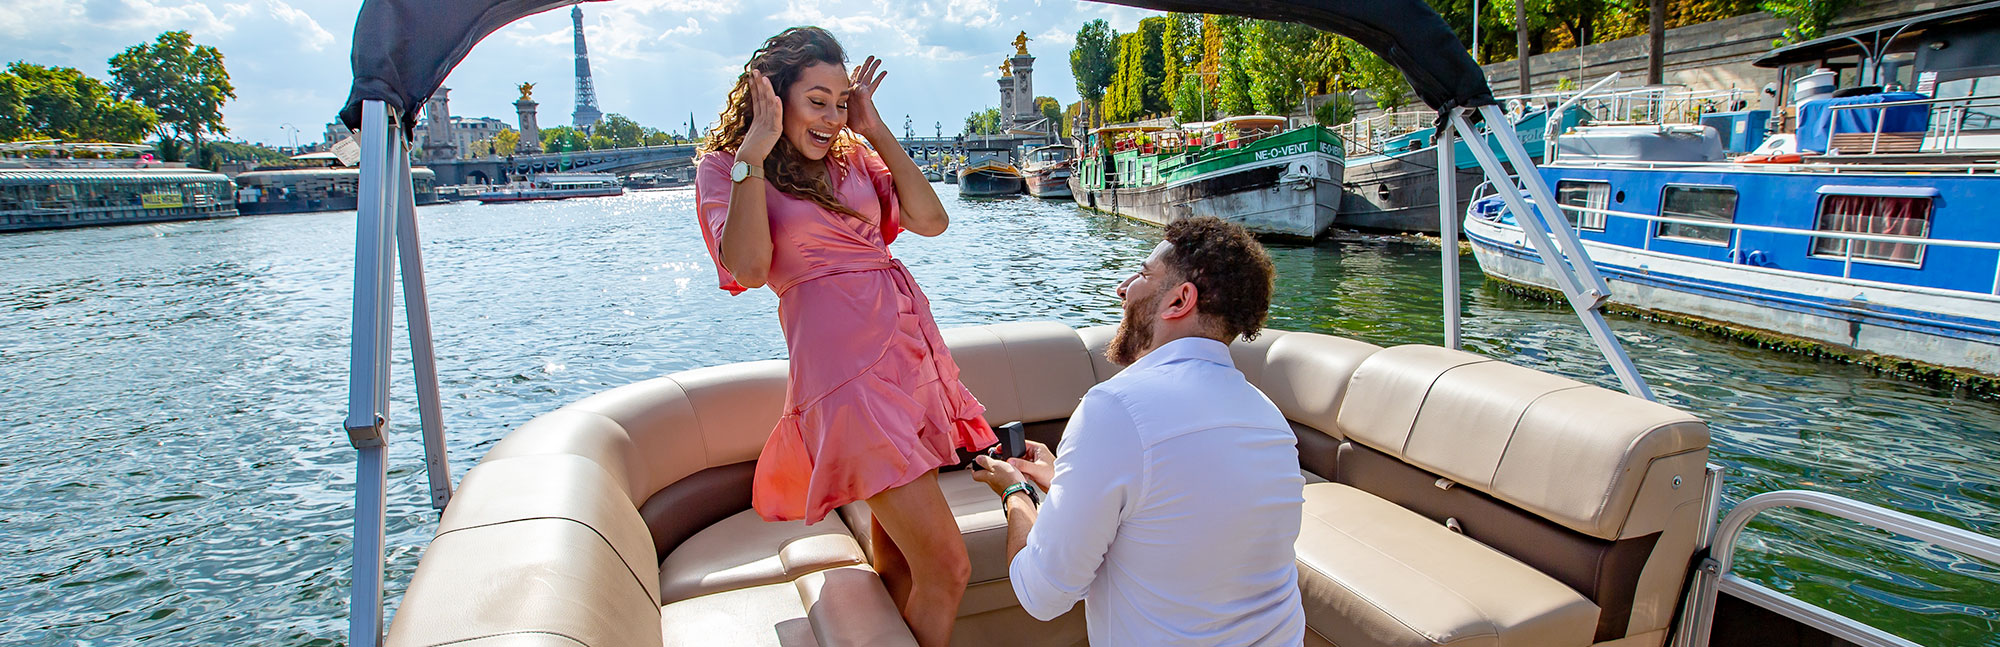 Proposal on a private boat in Paris